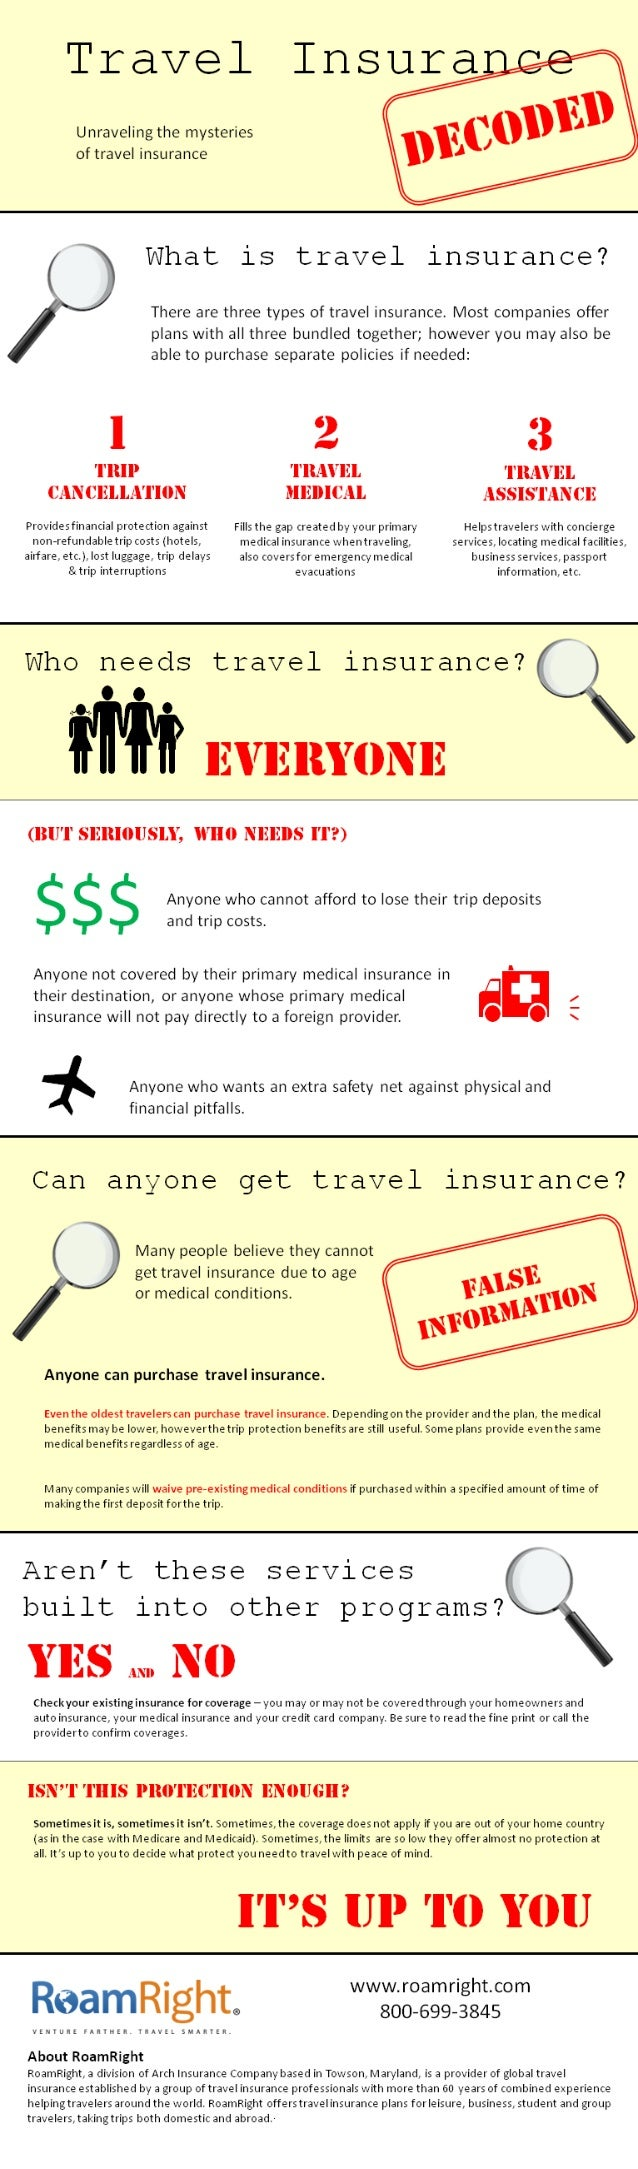 Travel Insurance Decoded